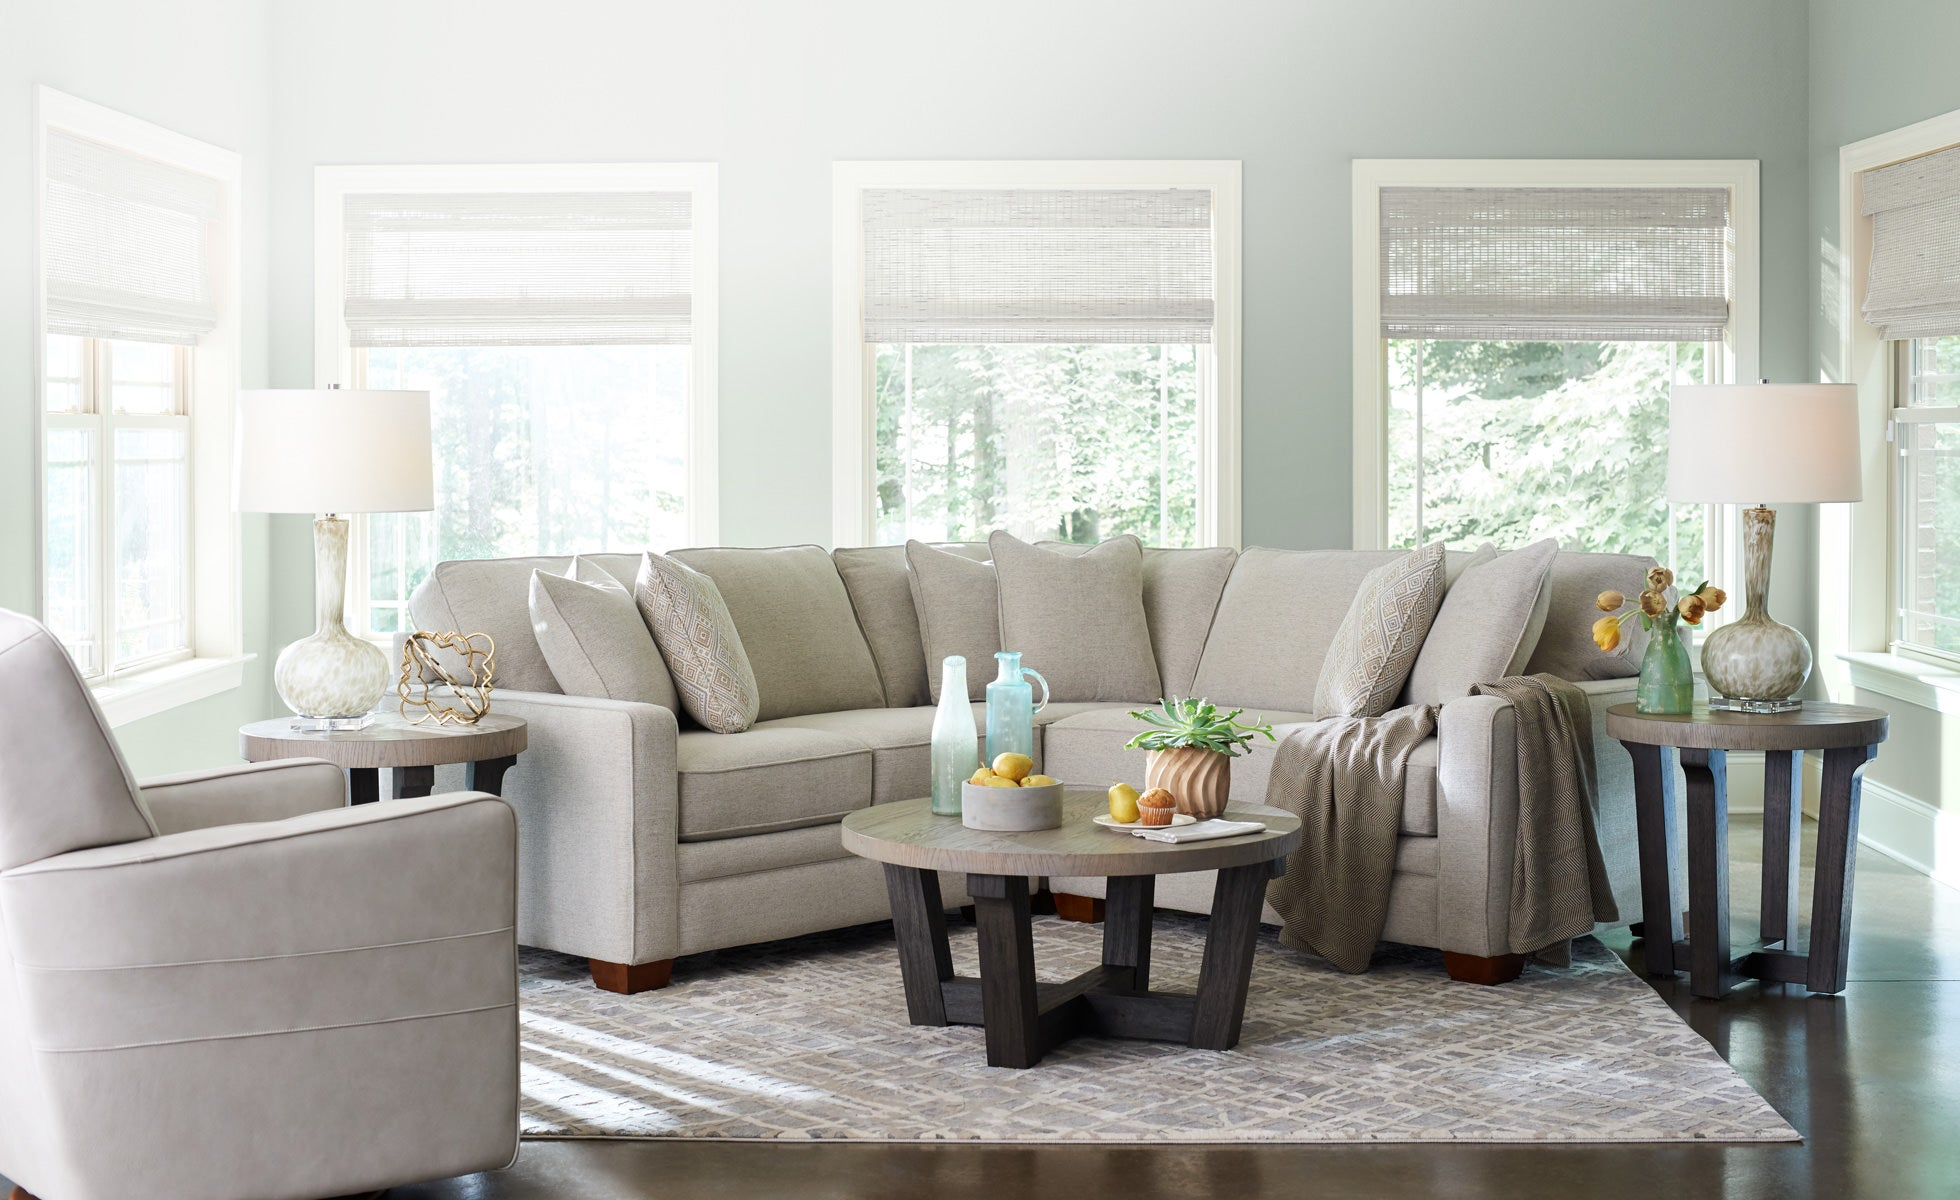 Home Decor Room Scene With Midtown Swivel Glider Meyer Sectional Beckham Round Cocktail